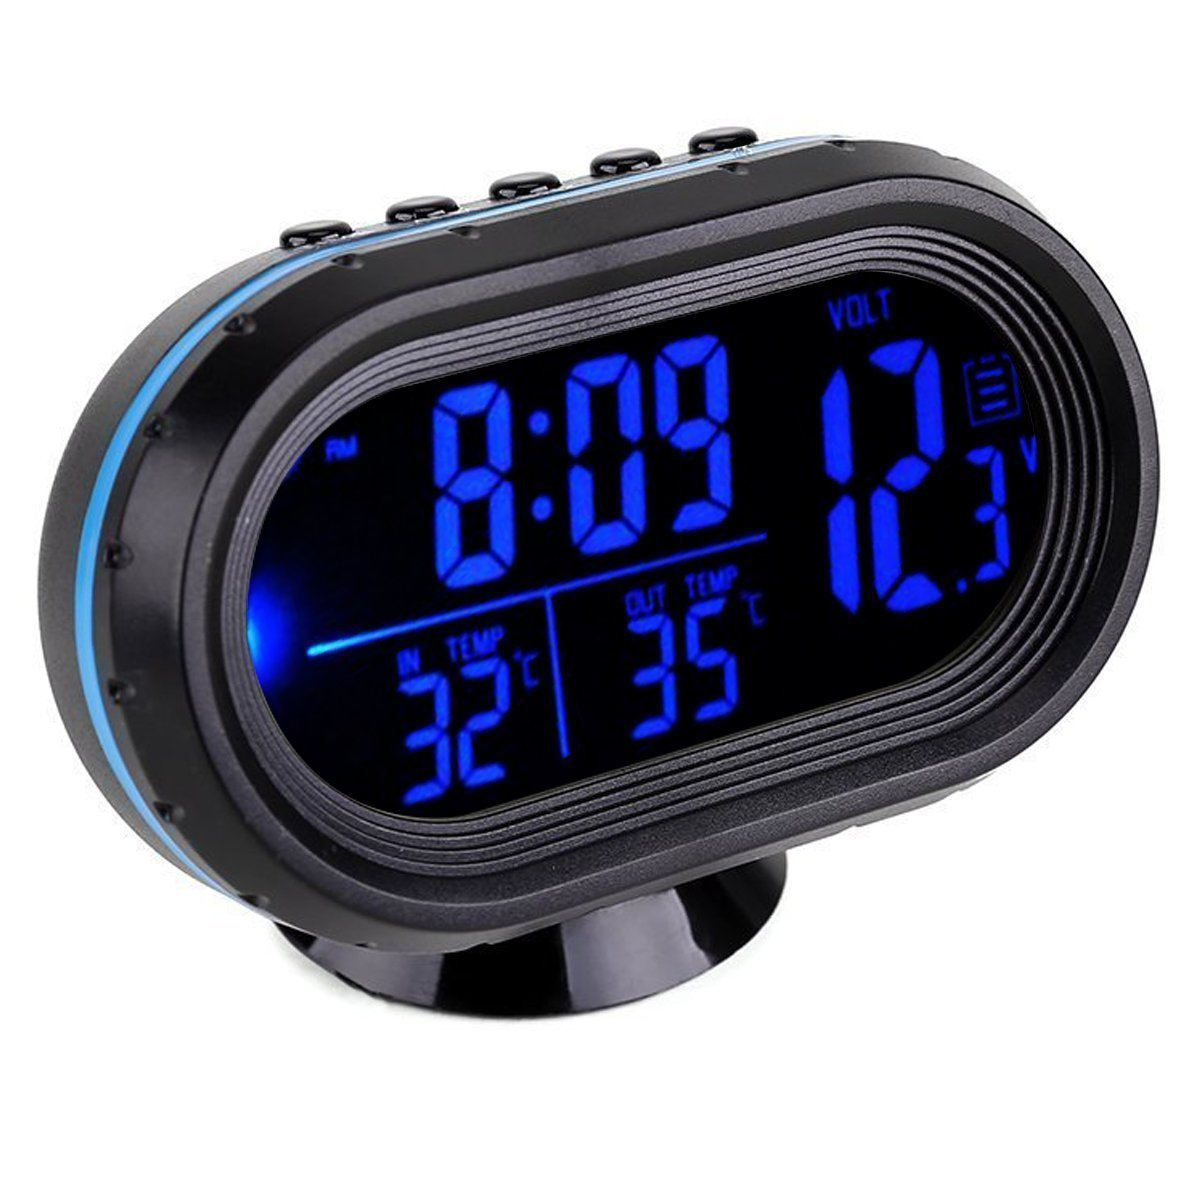 GuDoQi Car Thermometer LCD Clock Portable Digital Small Temperature Time Luminous Clocks Blue QBY UKAIALIDTV2760